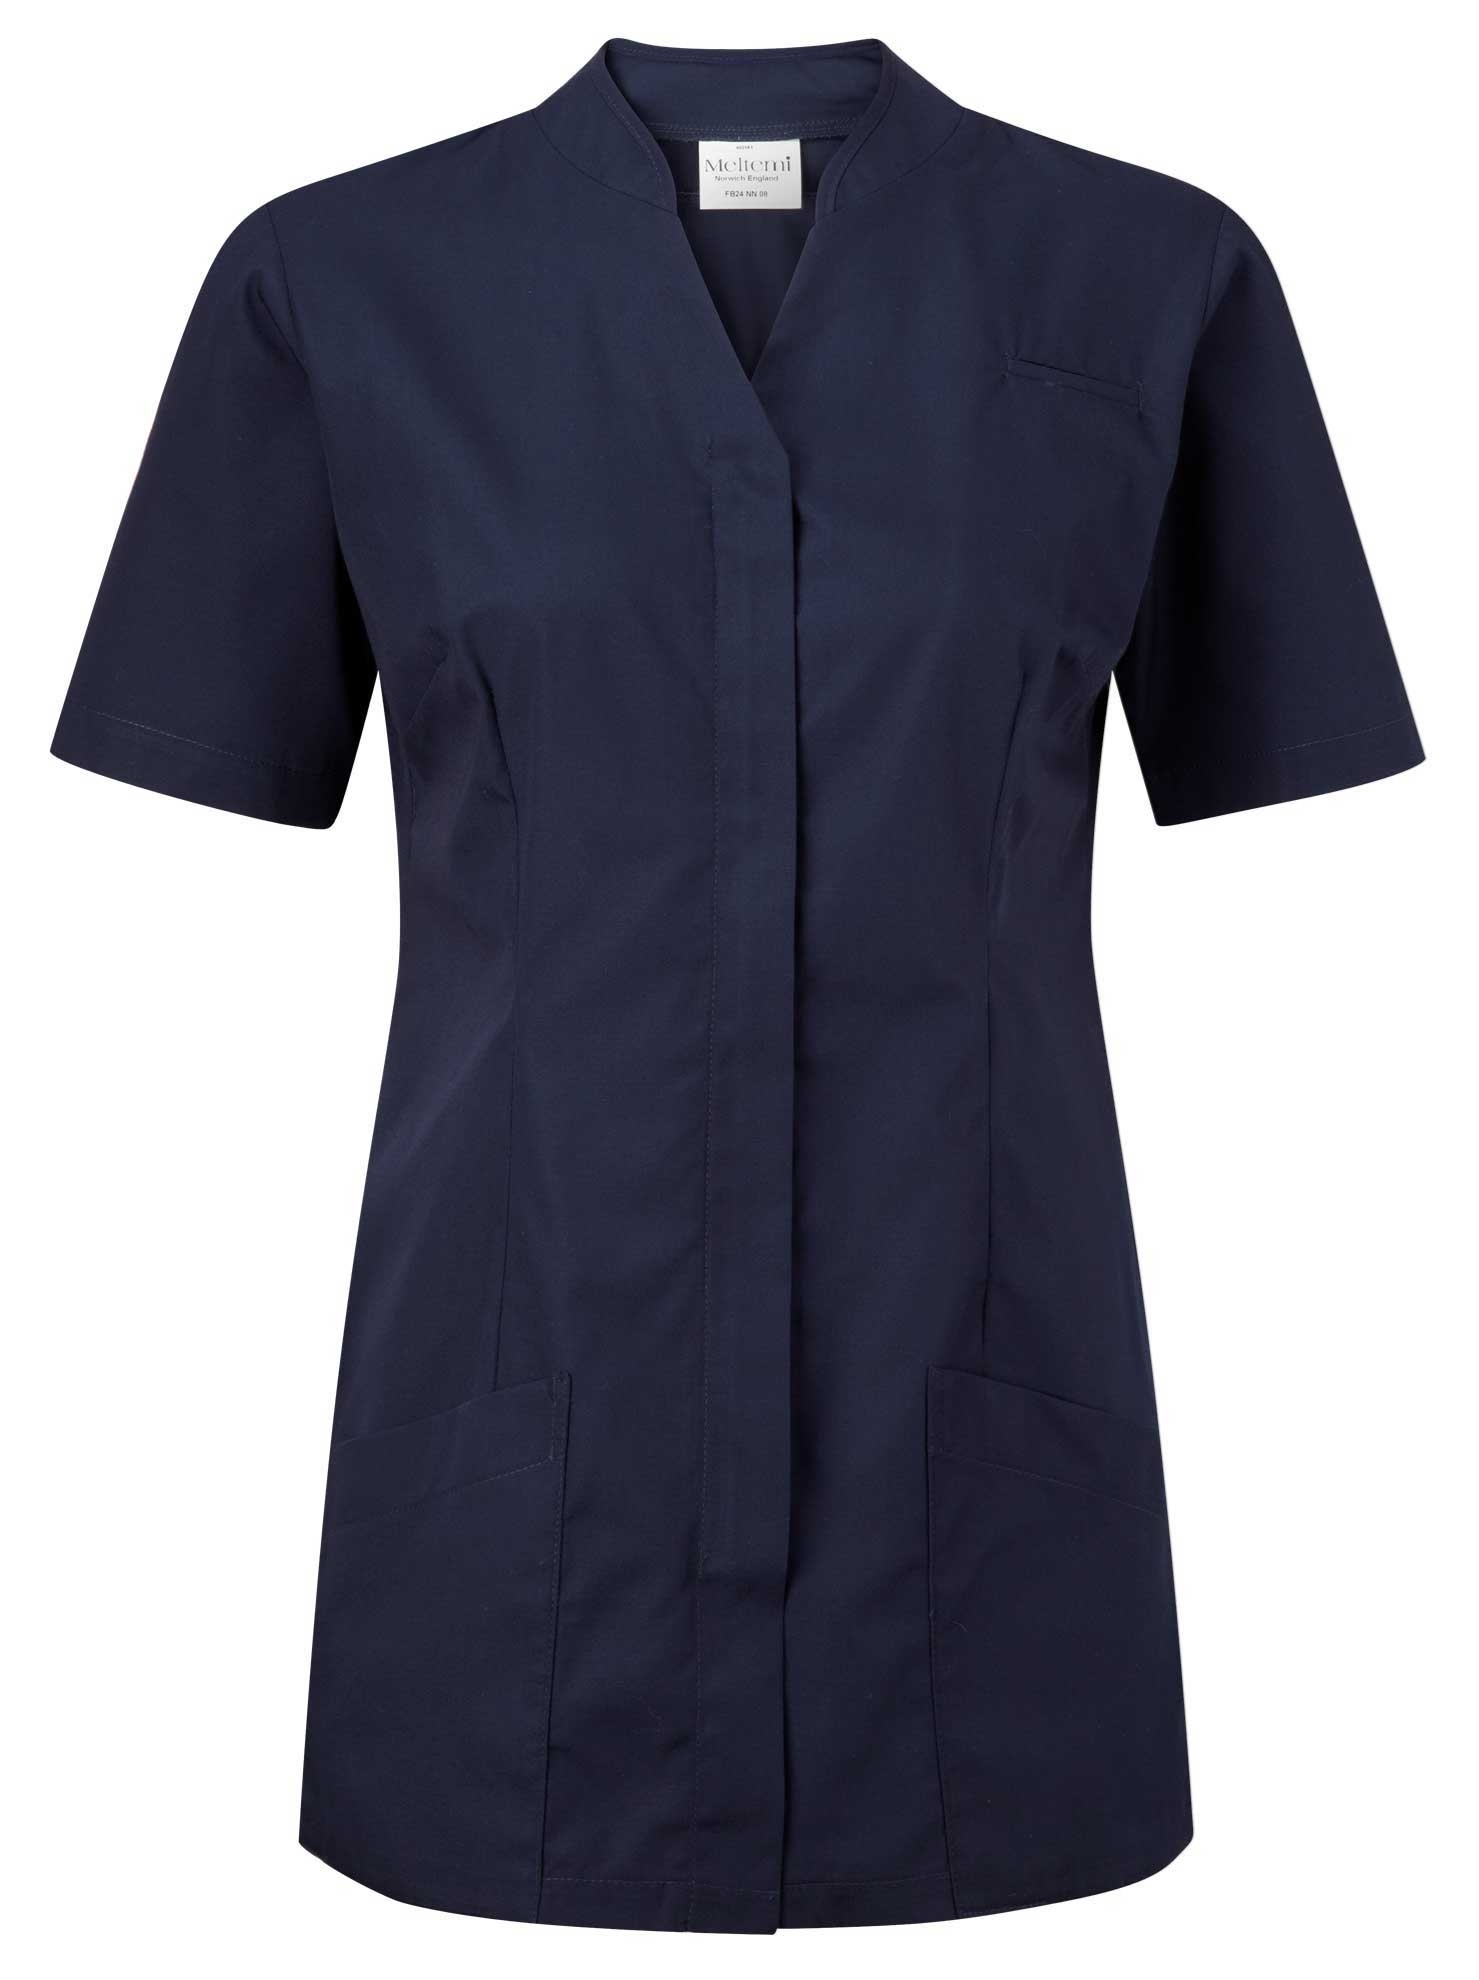 Picture of Polycotton Top - Navy